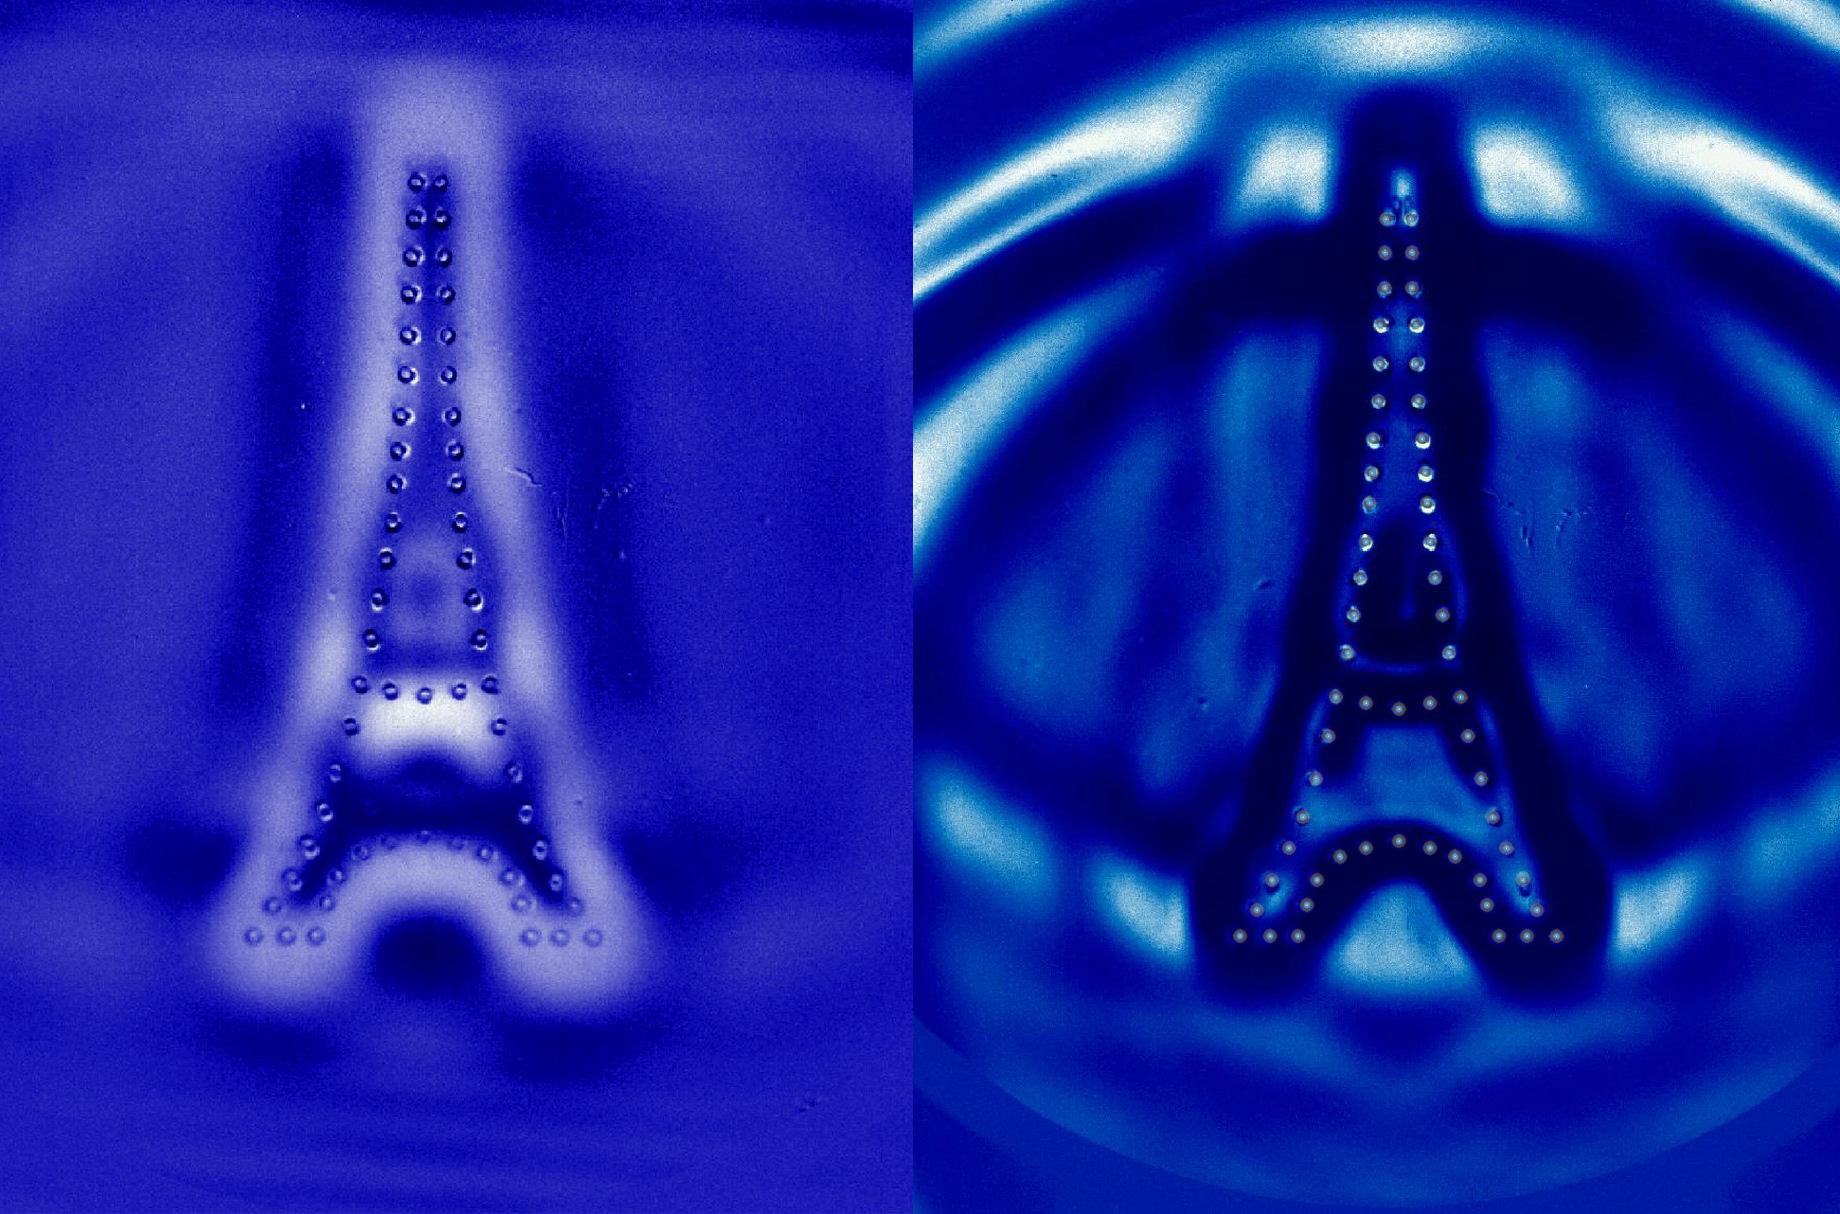 Ripples in the water returned exactly to their start point - the shape of the Eiffel Tower